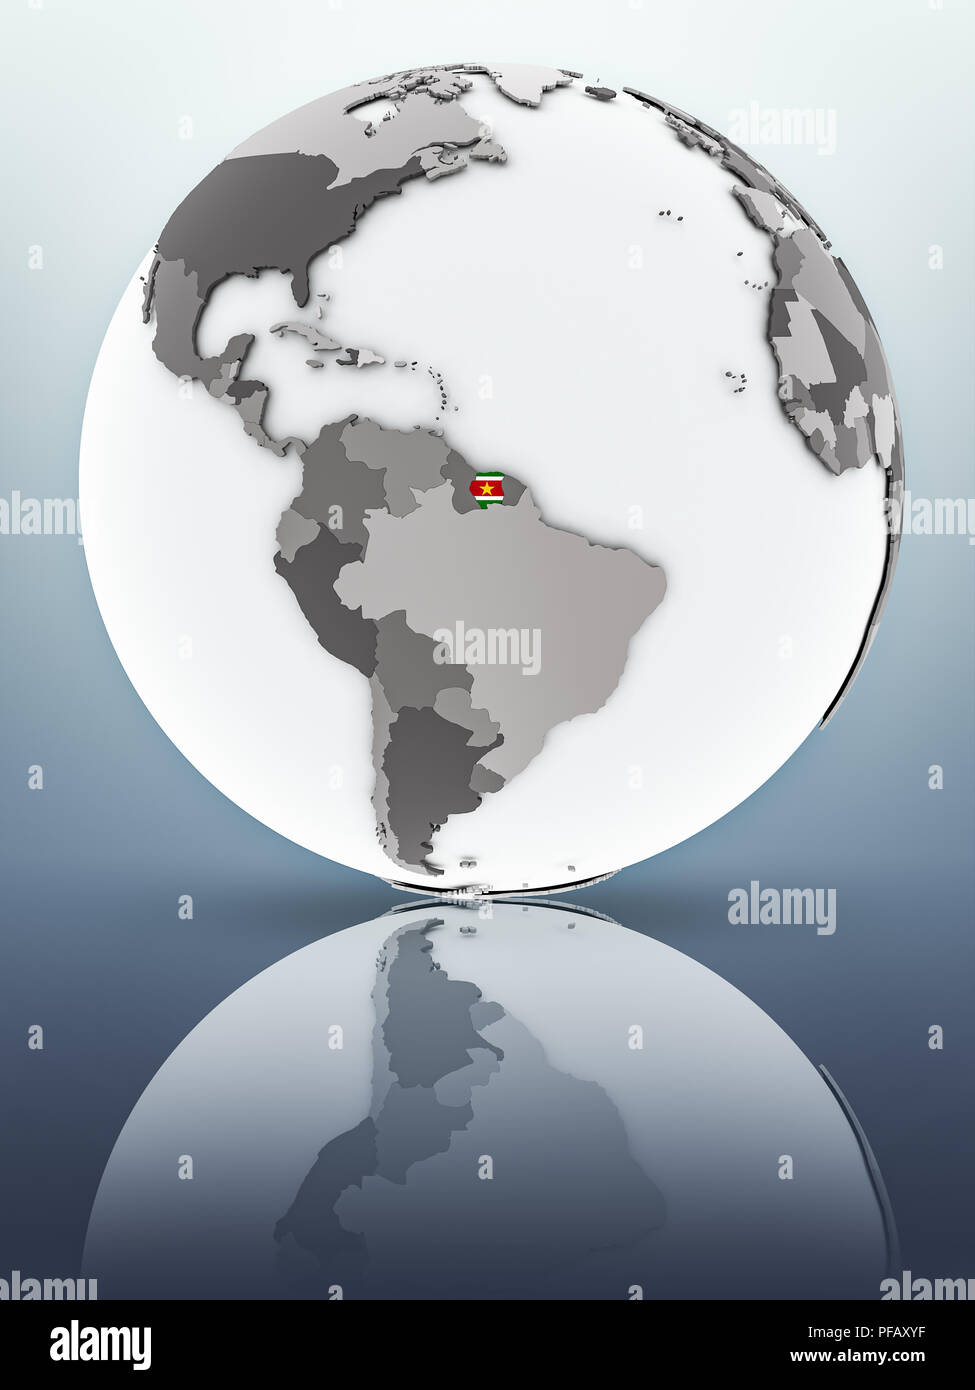 Suriname with flag on globe reflecting on surface. 3D illustration. - Stock Image